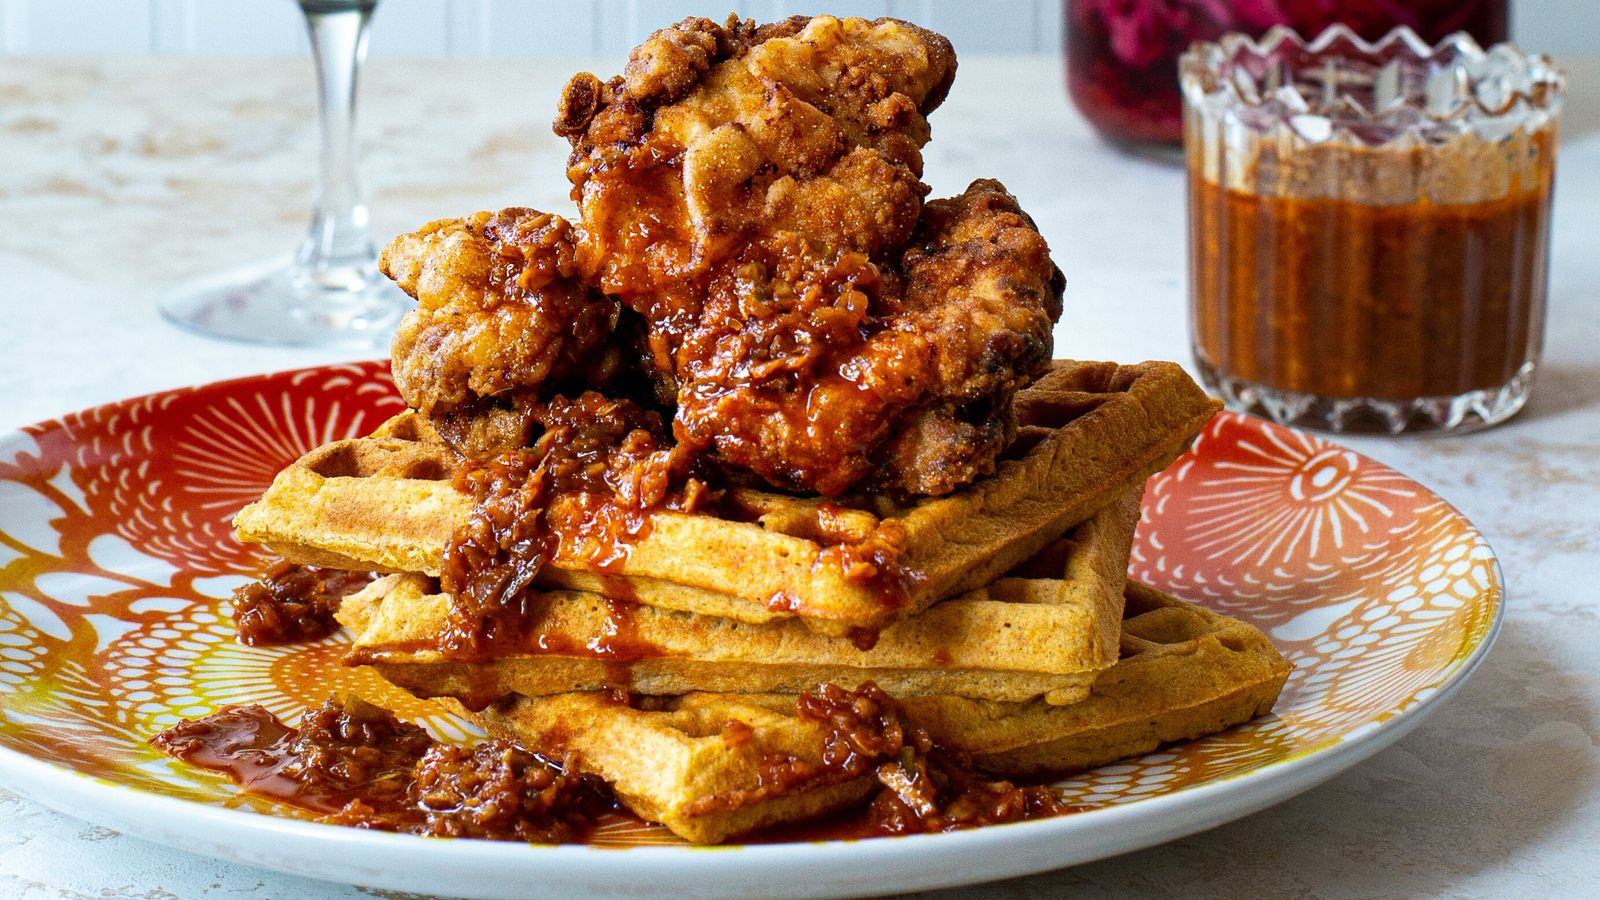 Learn how to make Marcus Samuelsson's fried chicken and waffles.